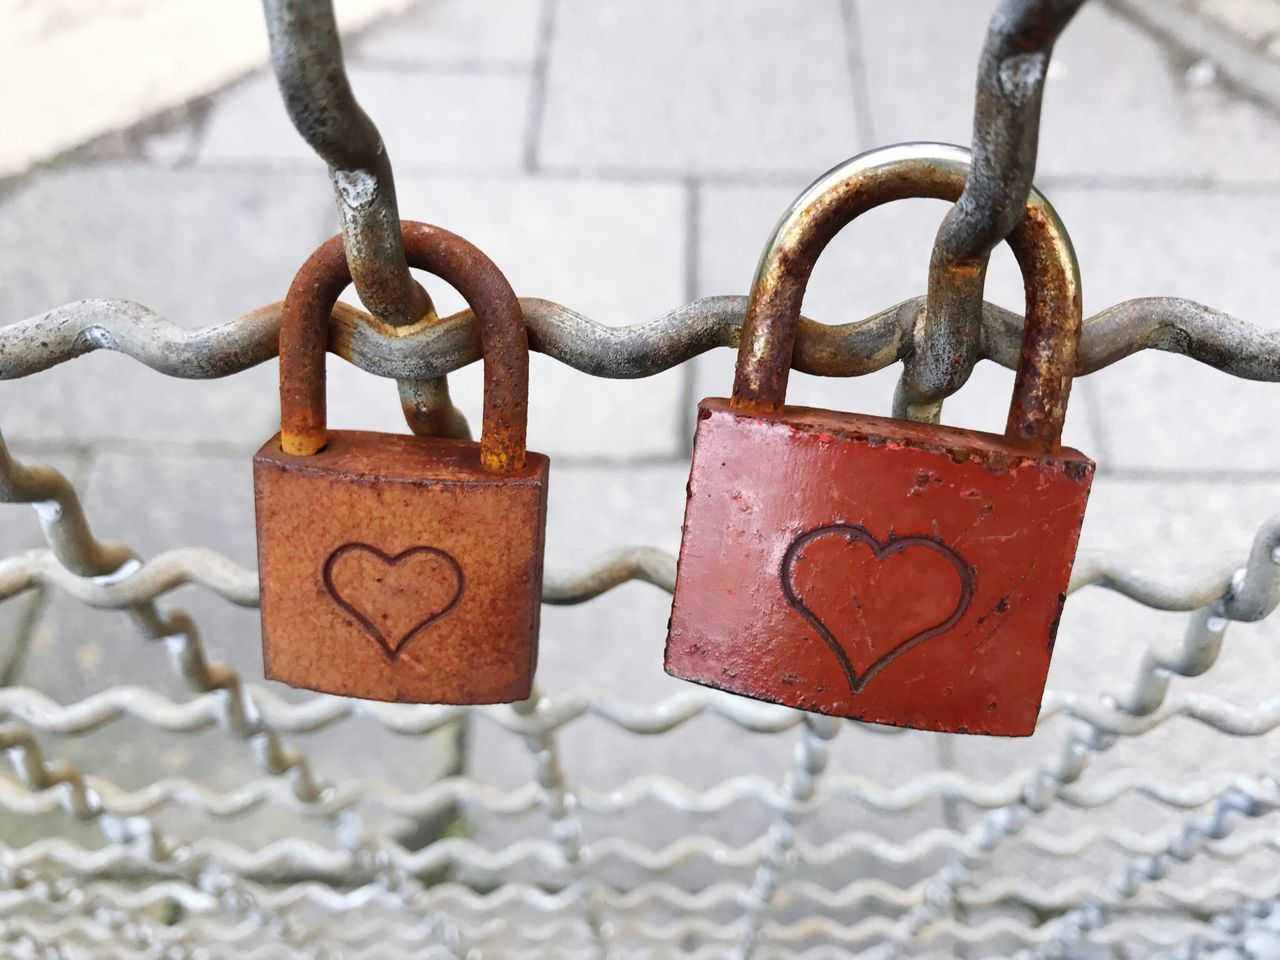 Love Locks Lock Heart Padlock Love Security Metal Protection Love Lock Safety Heart Shape Close-up Romance Hanging Railing Focus On Foreground No People Luck Chain Outdoors Hope Faith